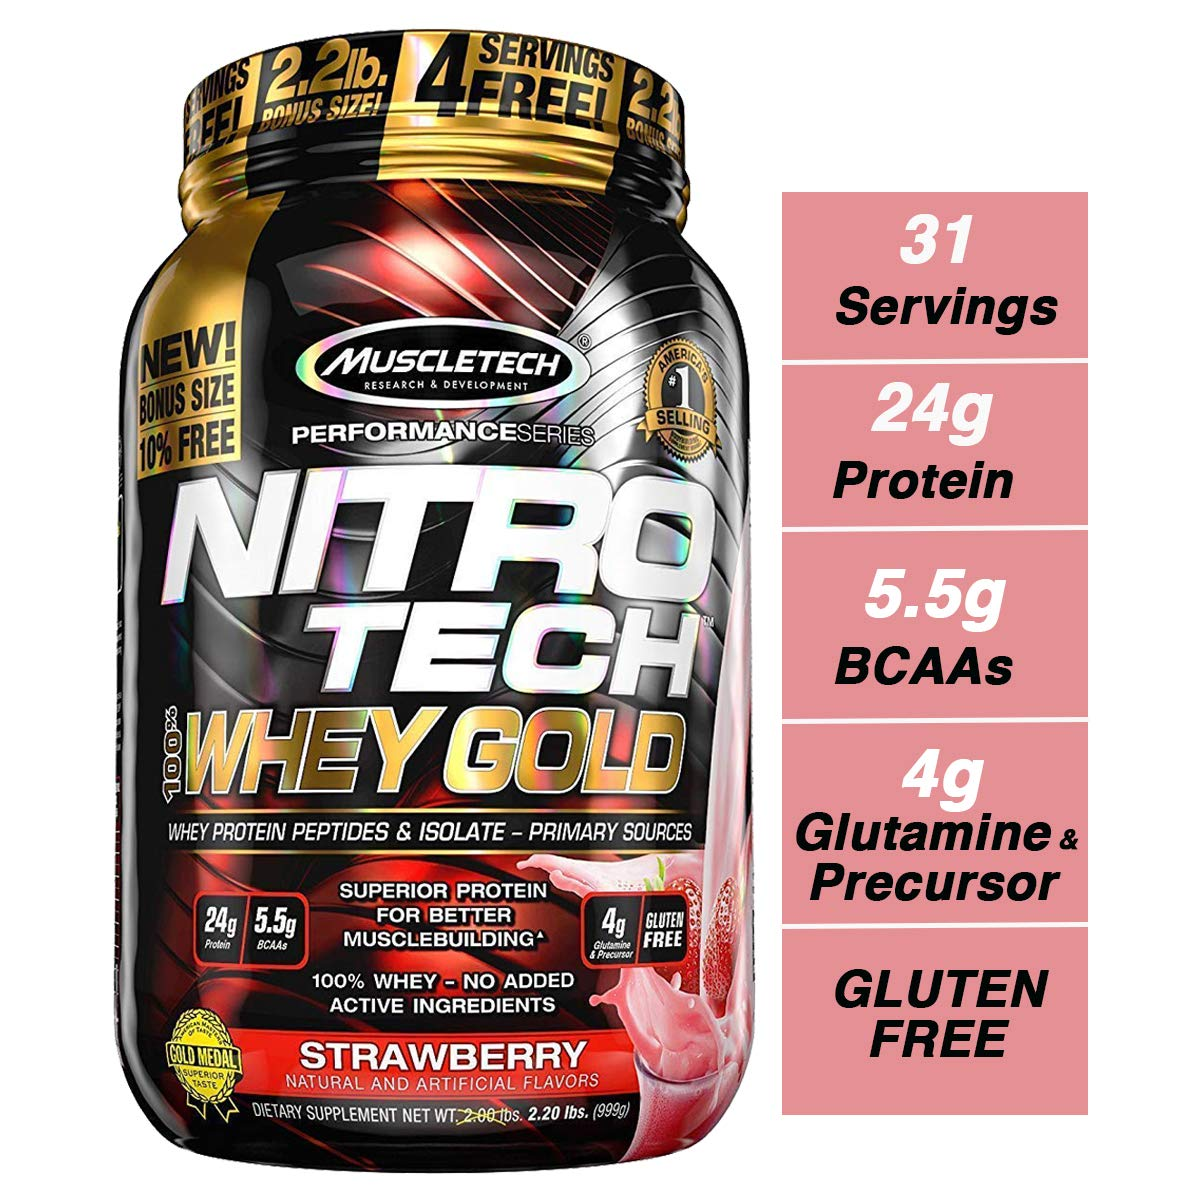 MuscleTech NitroTech Whey Gold, 100% Whey Protein Powder, Whey Isolate and Whey Peptides, Strawberry, 35.2 Ounce by MuscleTech